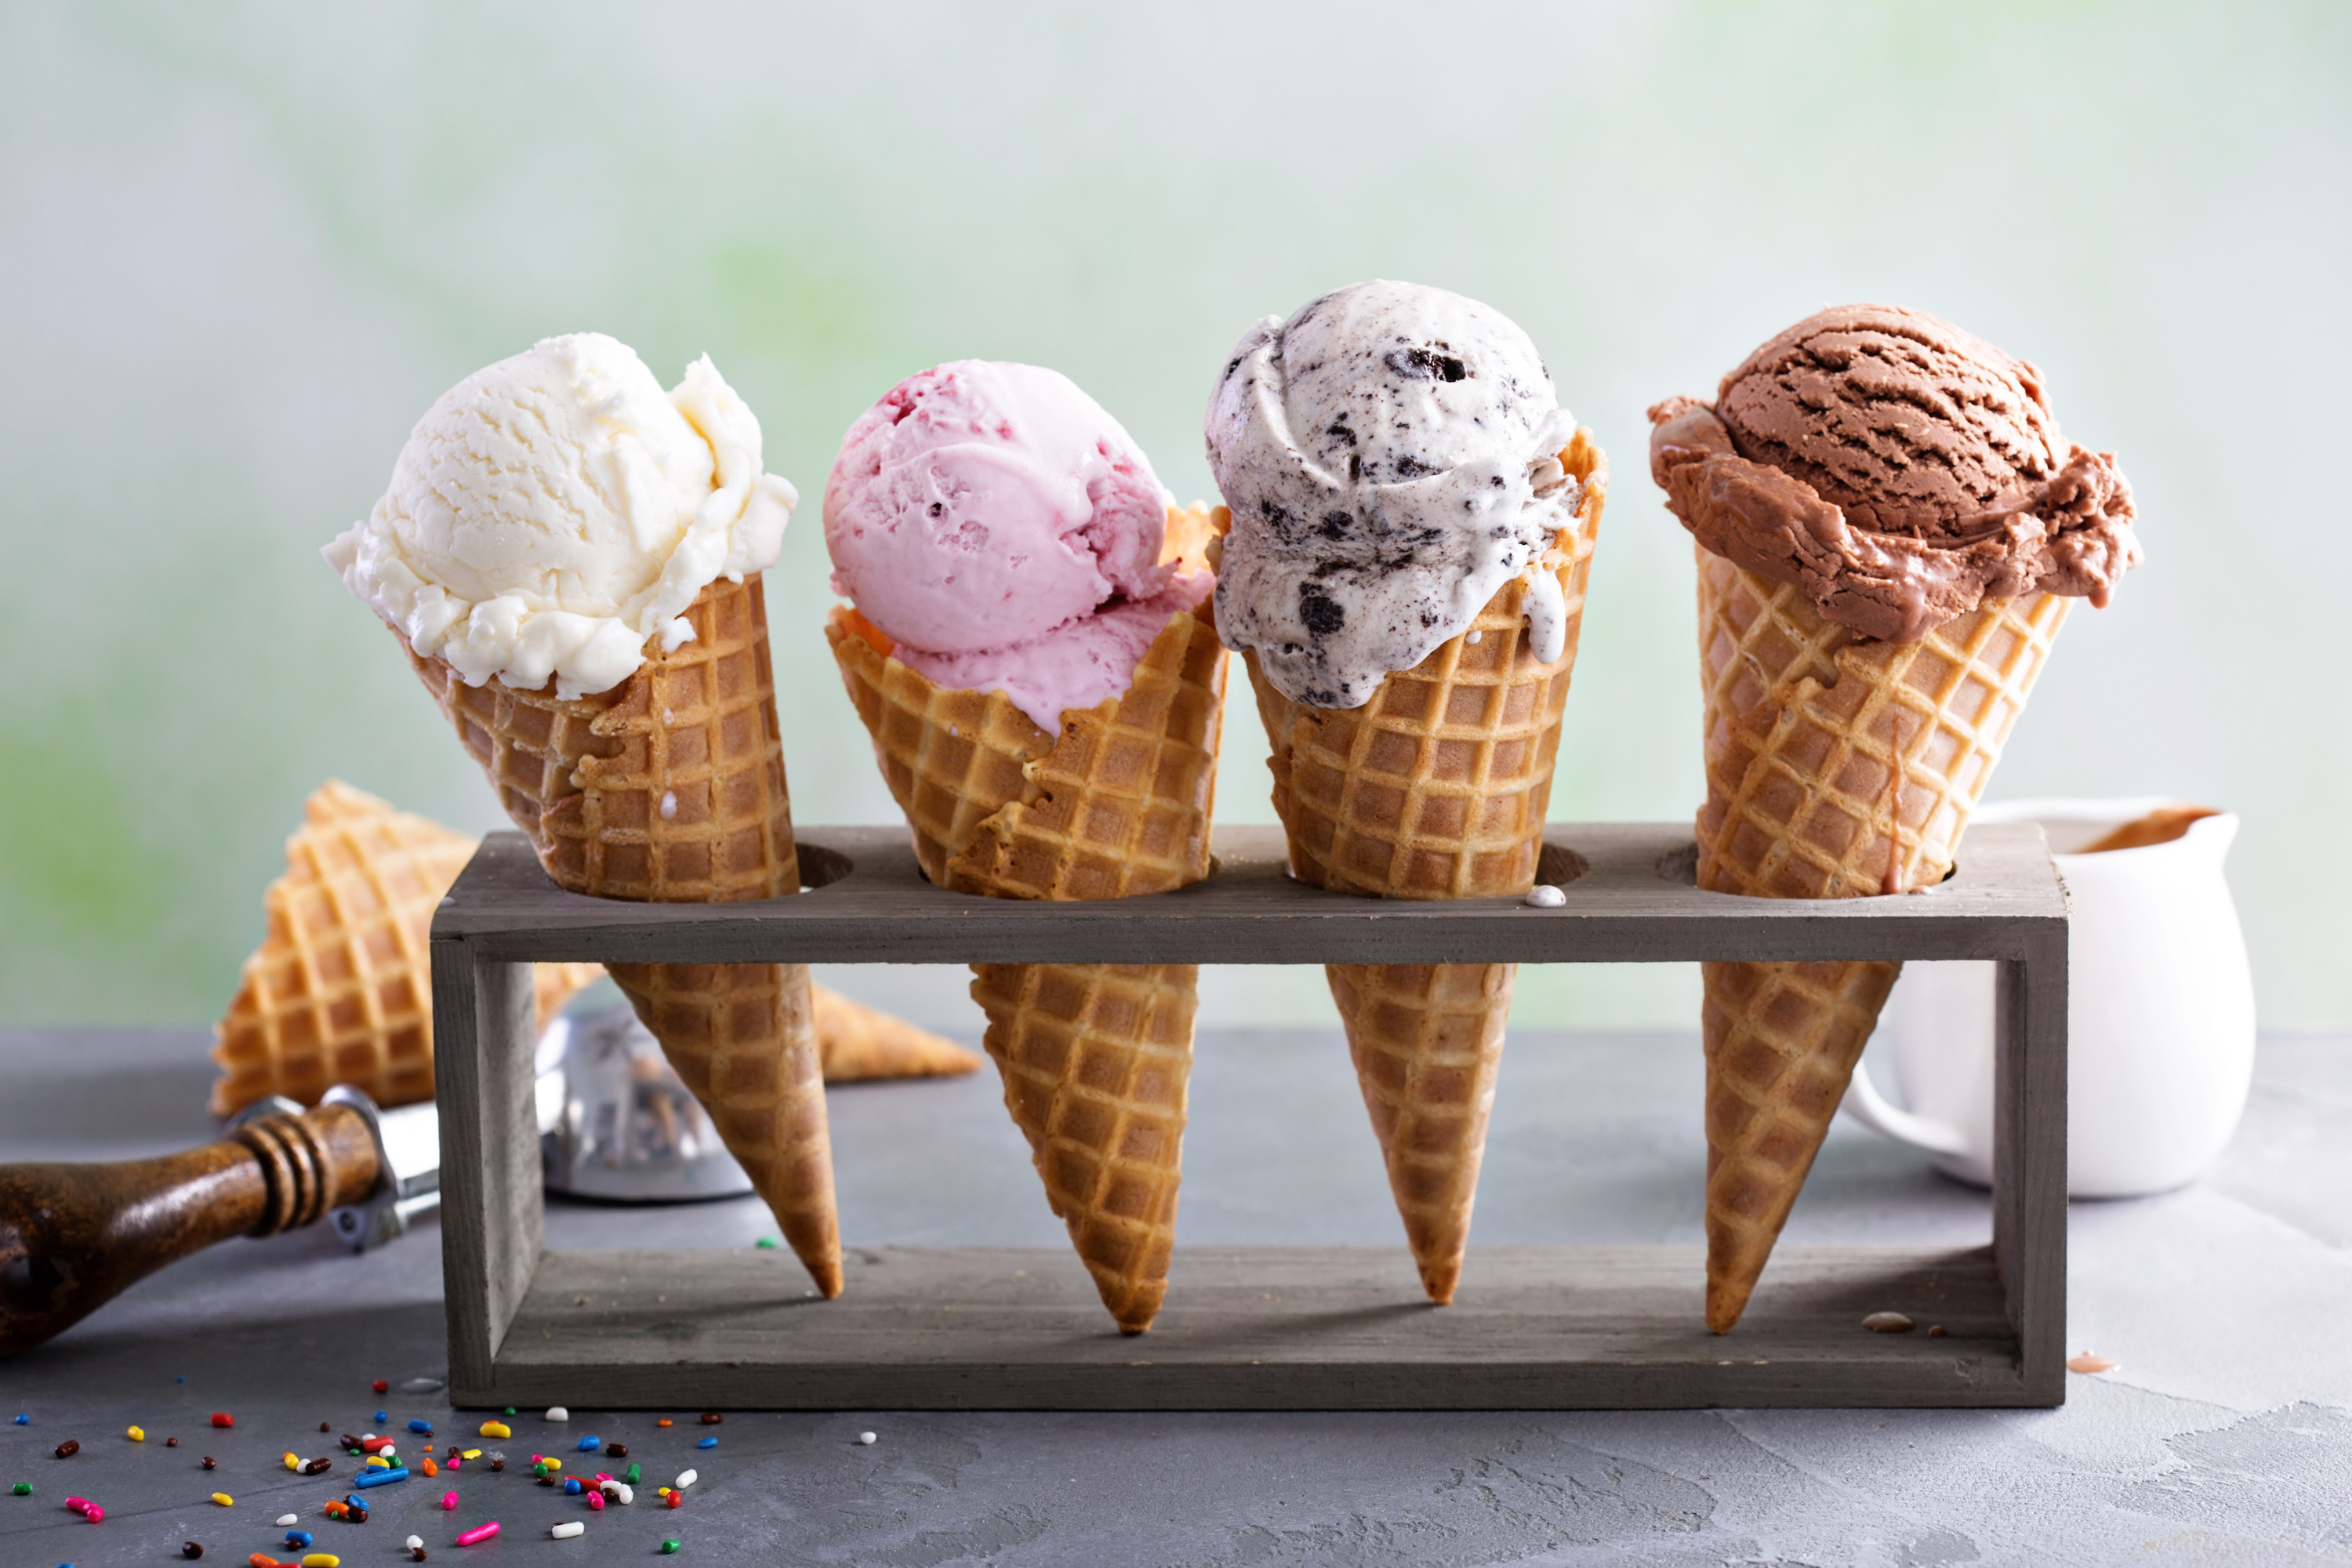 The 15 Most Popular Types of Ice Creams From Around the World